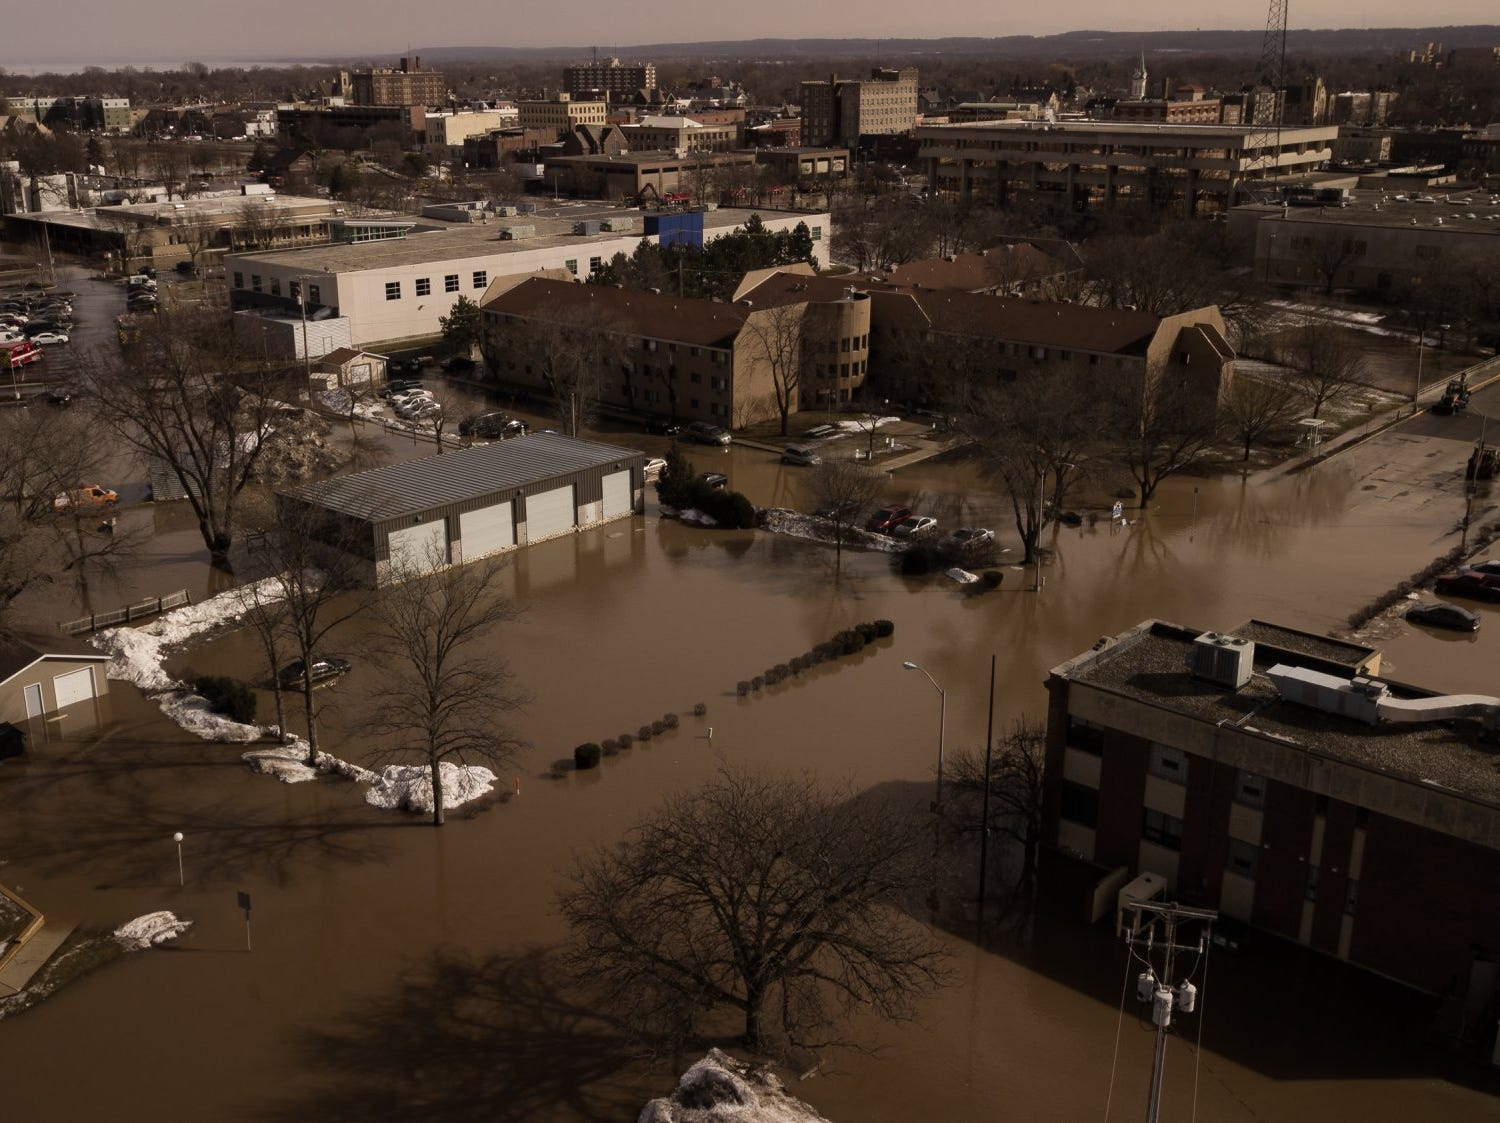 Western Avenue is pictured under water after ice jams caused flooding from the Fond du Lac River on Thursday, March 14. This photo was taken by drone at around 11 a.m.